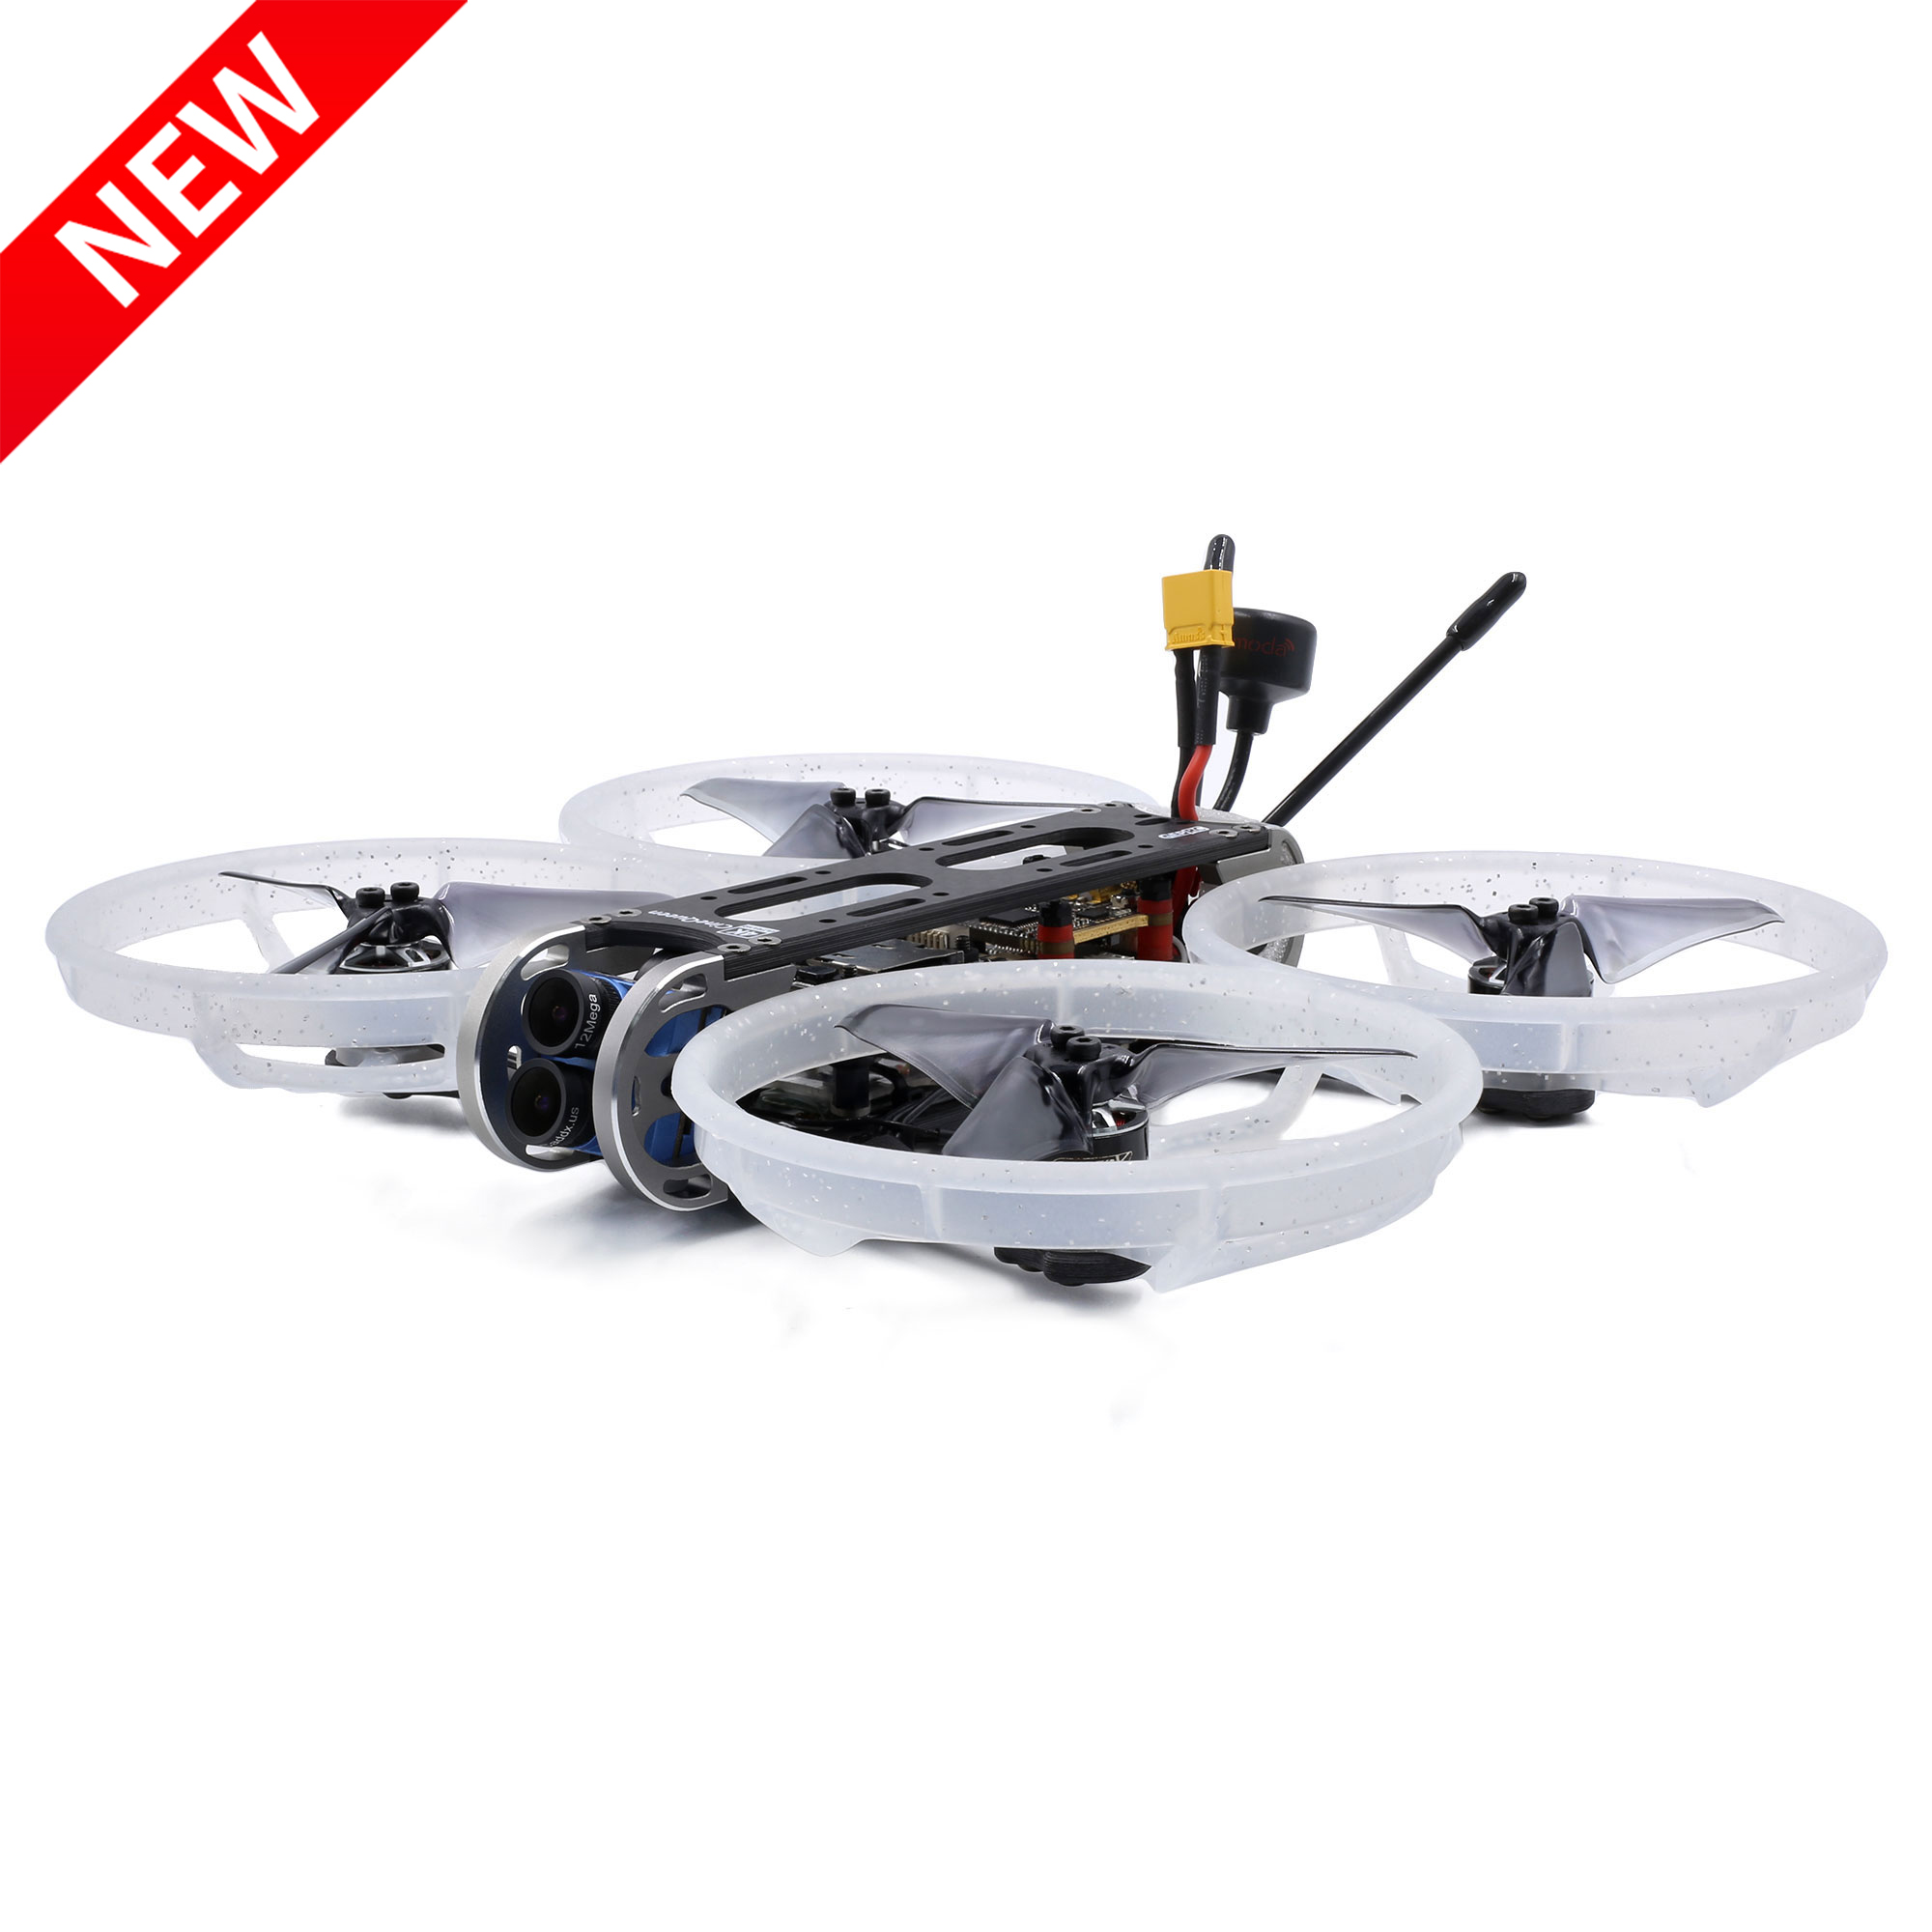 New Arrival GEPRC CineQueen 4K Caddx Tarsier V2 Camera 3 Inch CineWhoop STABLE V2 F4 30A 1206 3600KV Motor for FPV Racing Drone